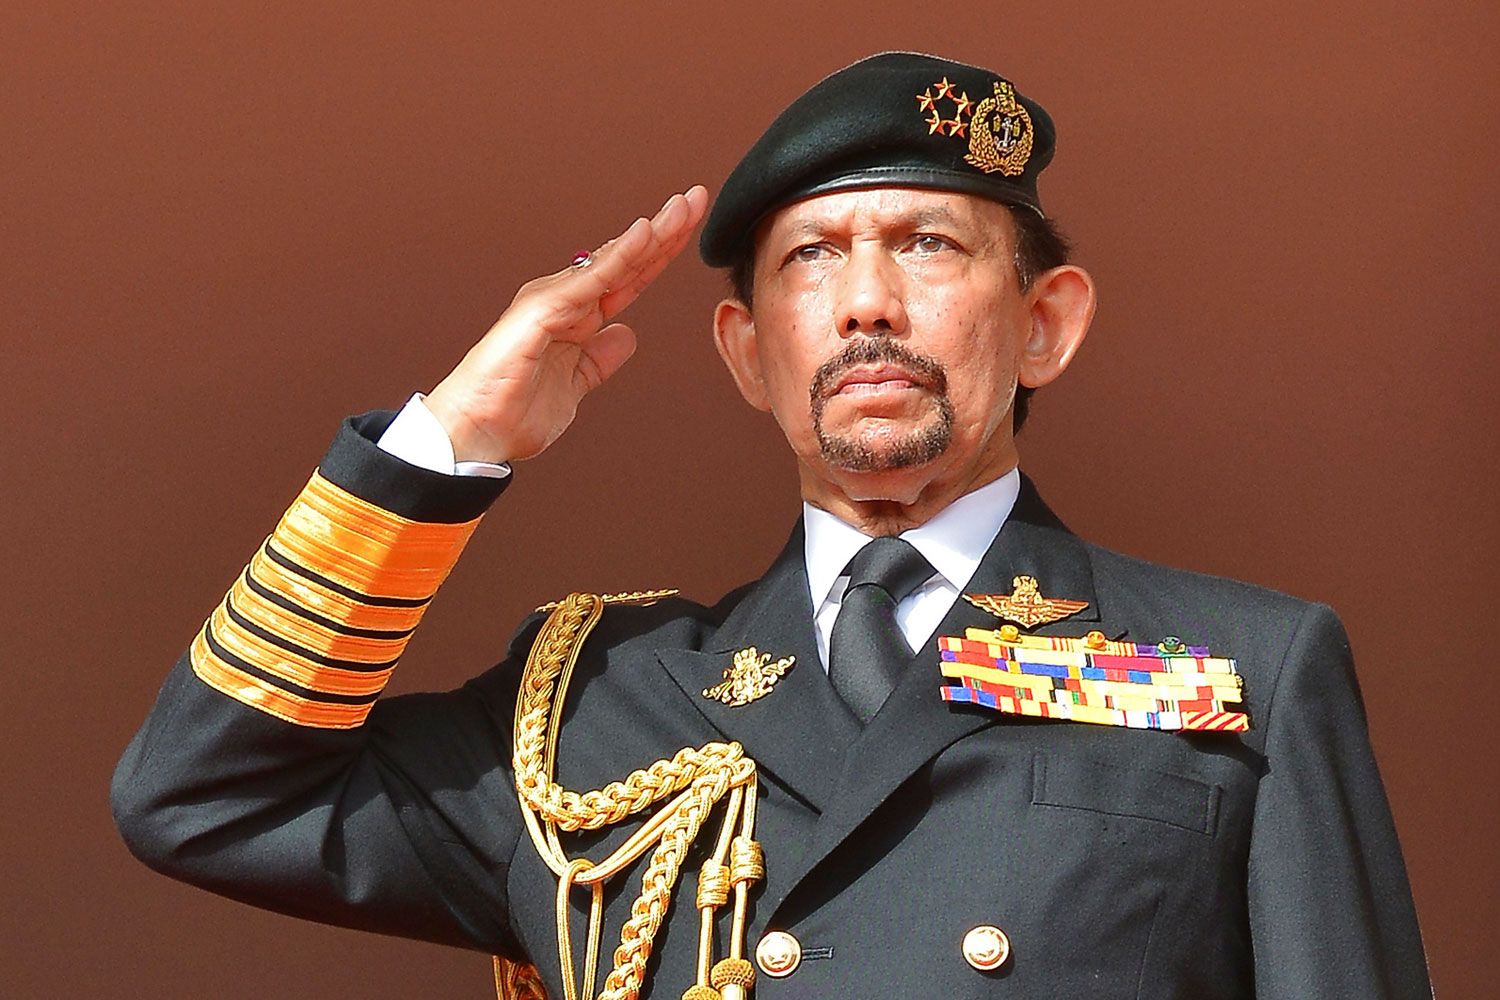 Brunei's Sultan Hassanal Bolkiah salutes as the national anthem is played during celebrations for Brunei's 30th National Day, in Bandar Seri Begawan on Feb. 23, 2014.